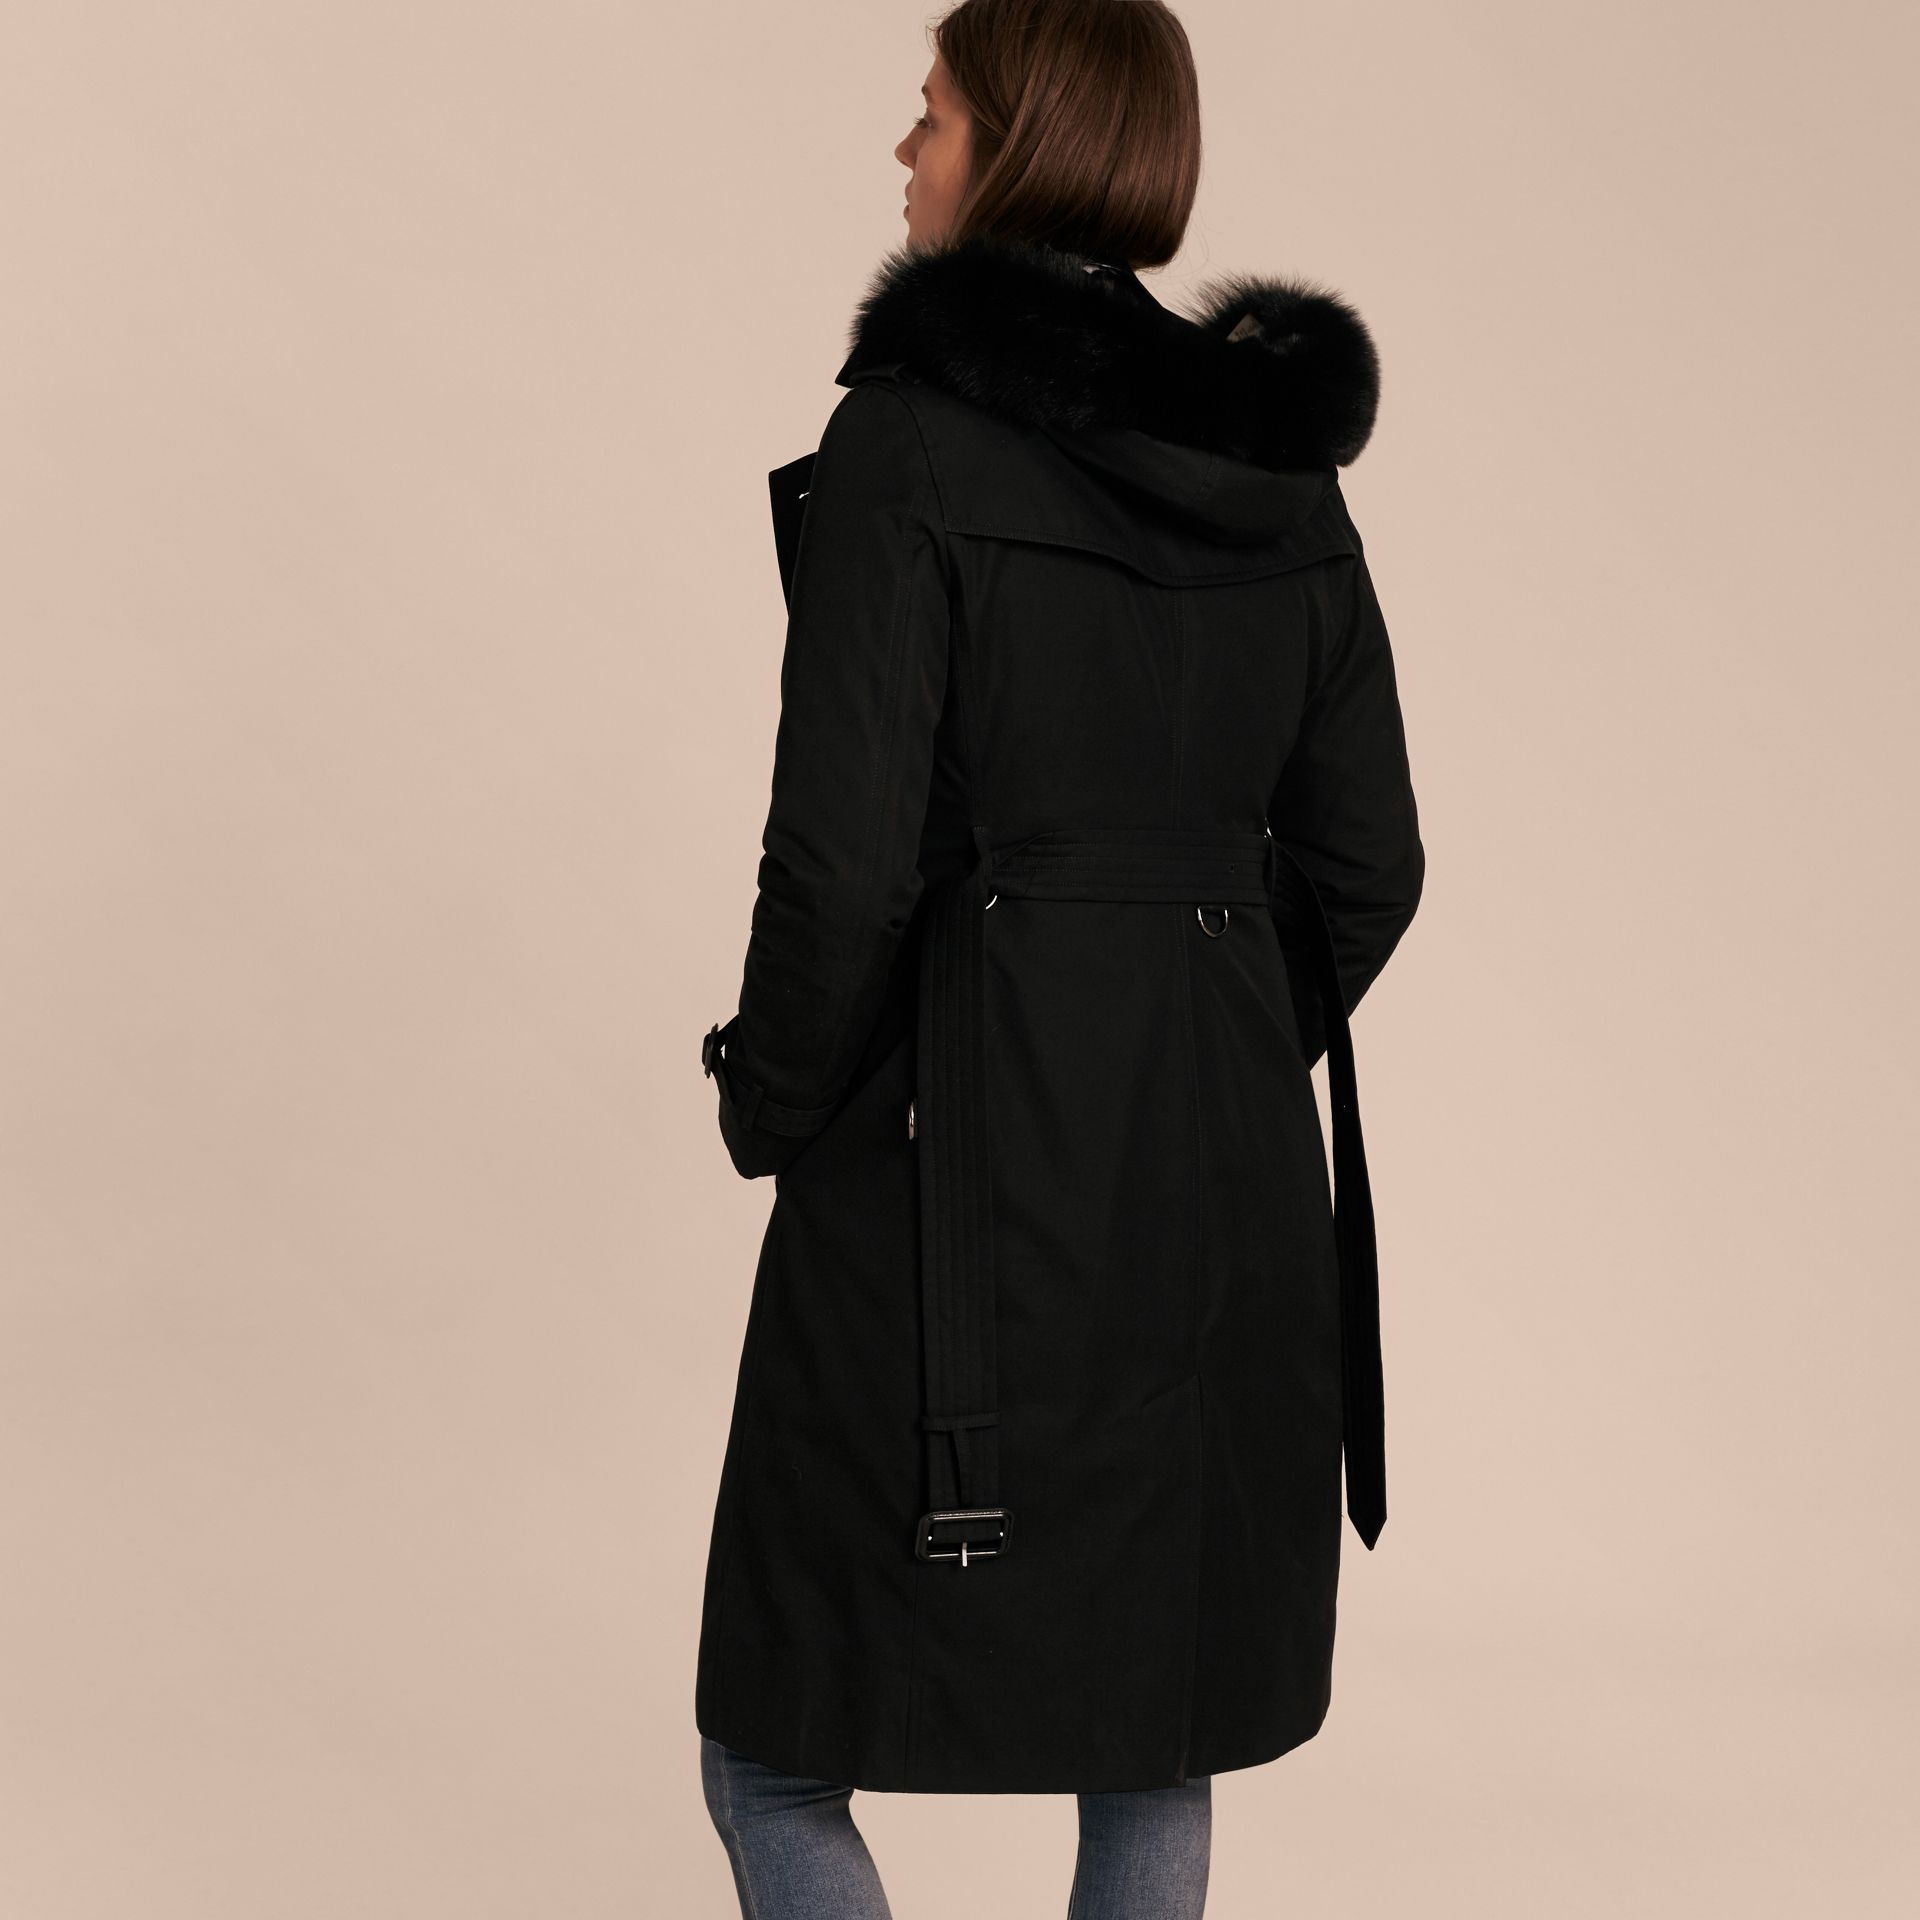 Black Fur-trimmed Hood Trench Coat with Detachable Warmer Black - gallery image 3